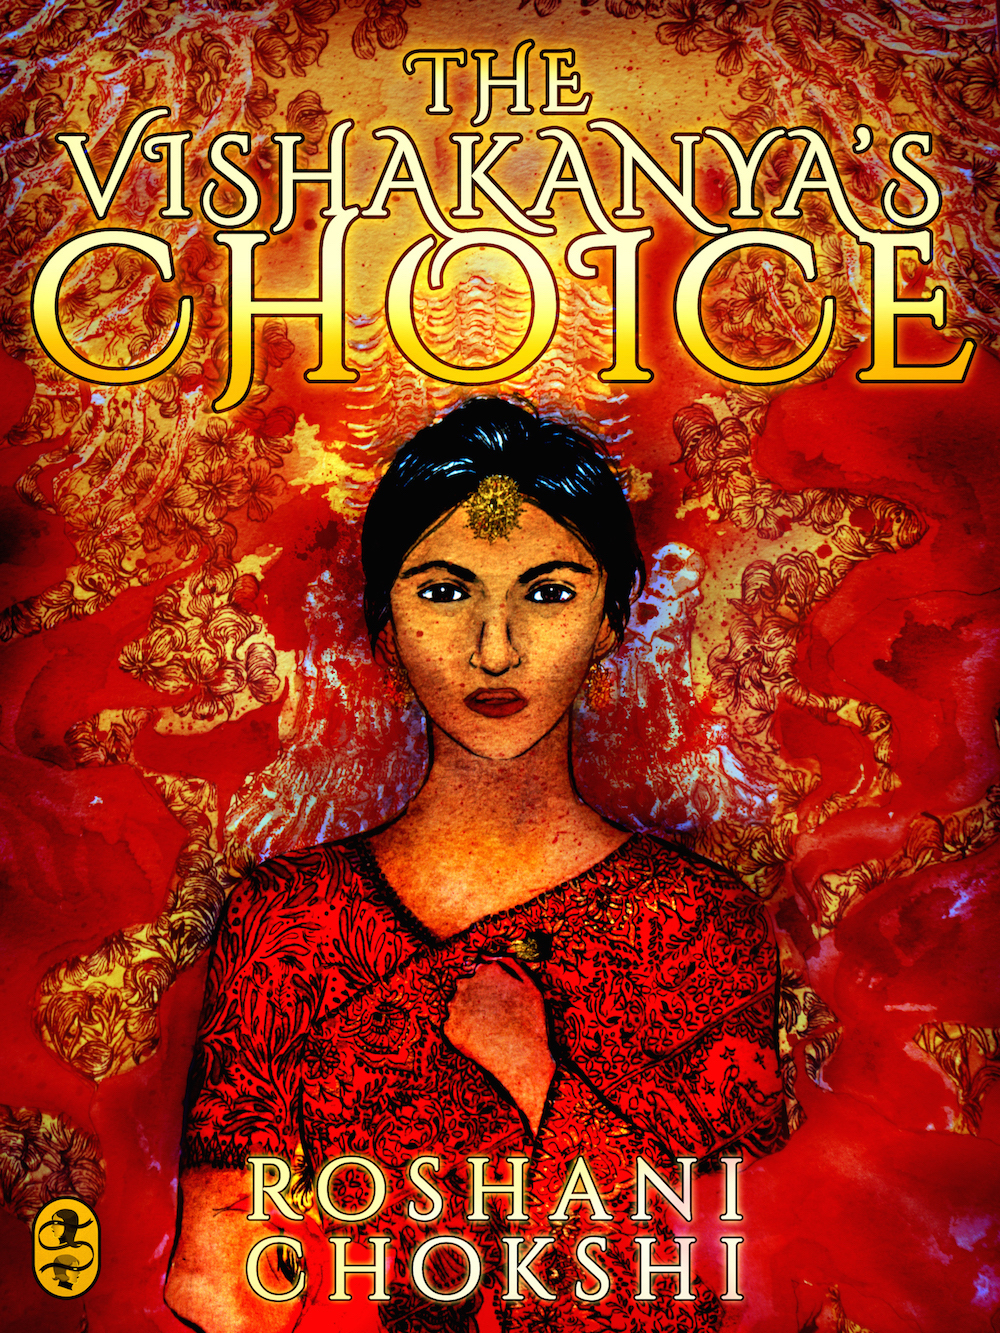 The Vishakanya's Choice